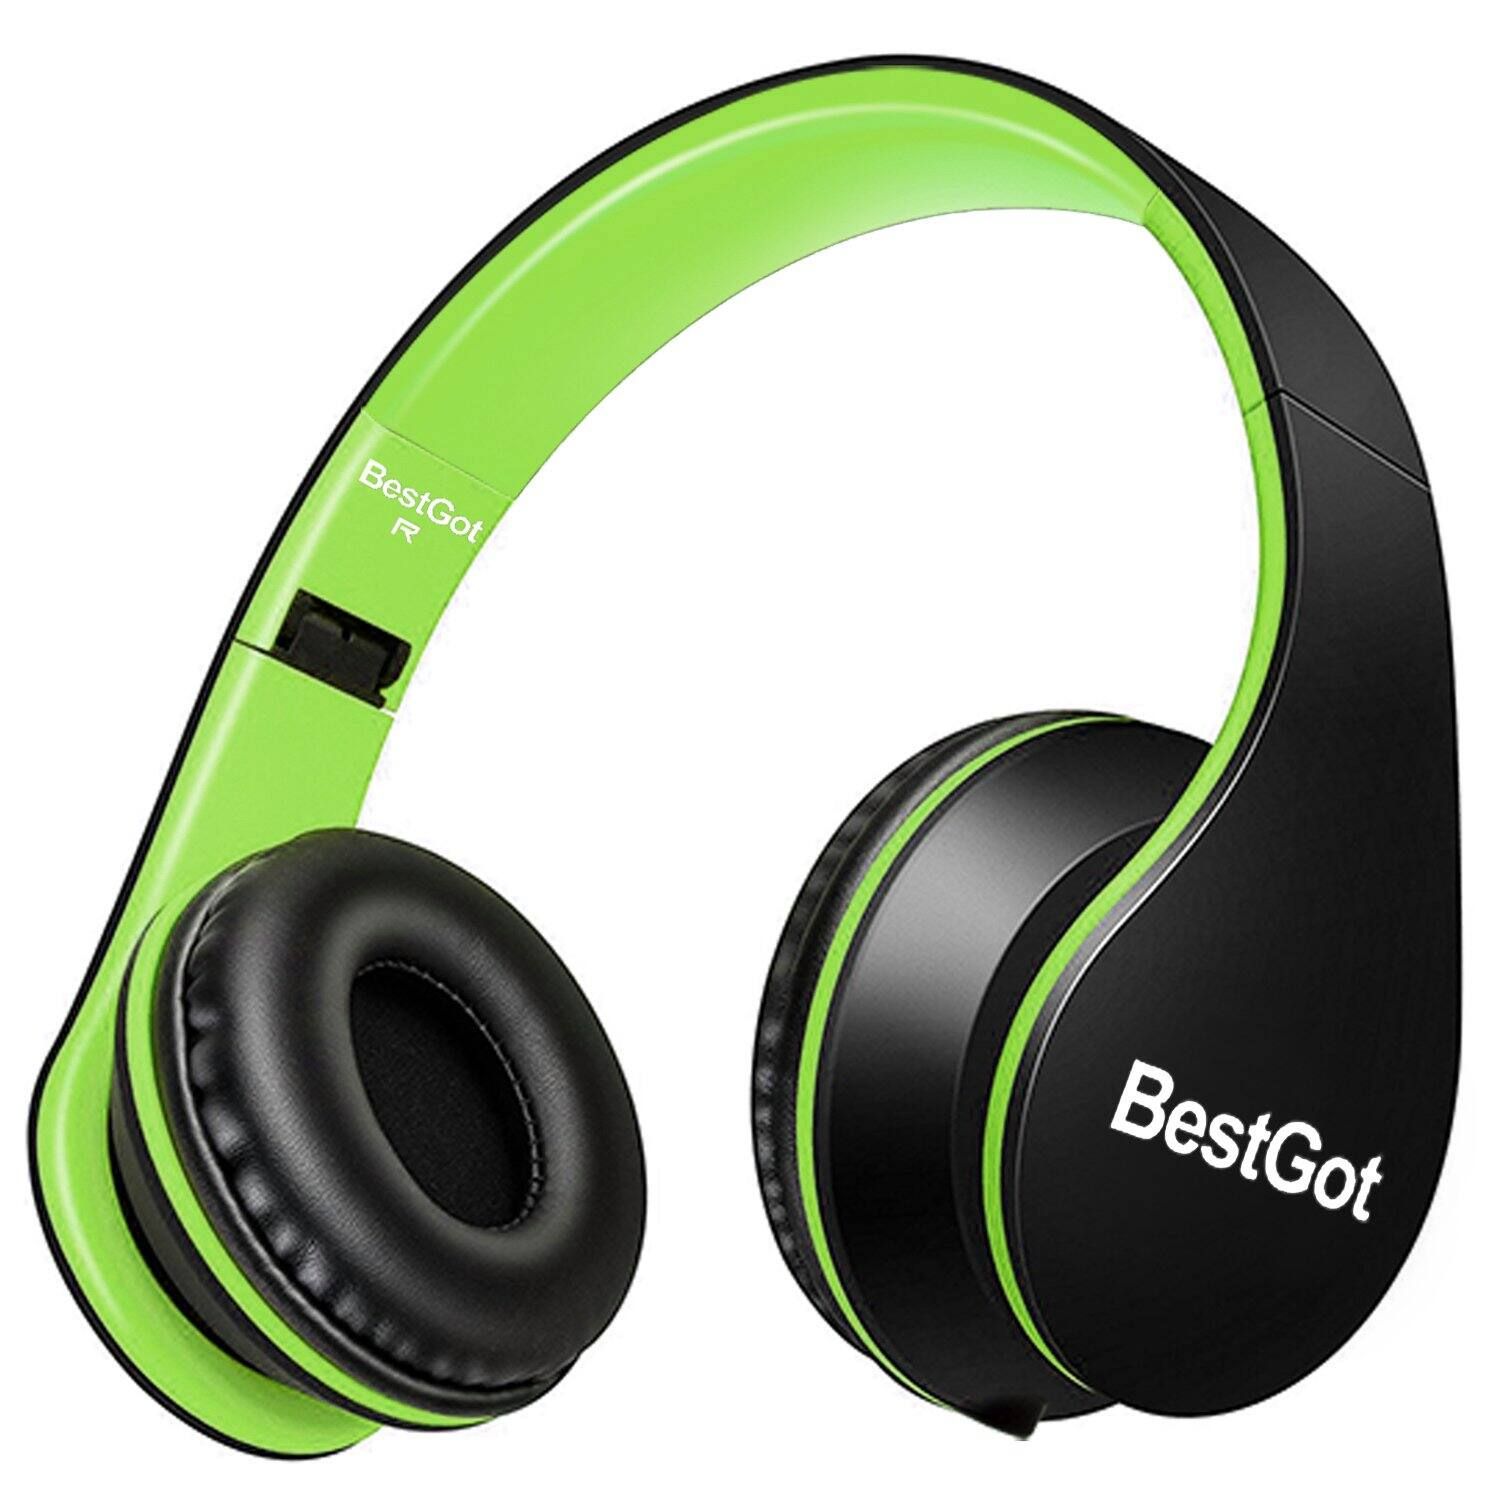 Headphones with Microphone for Kids/Adults, Foldable, Removable Cord -- $8.39